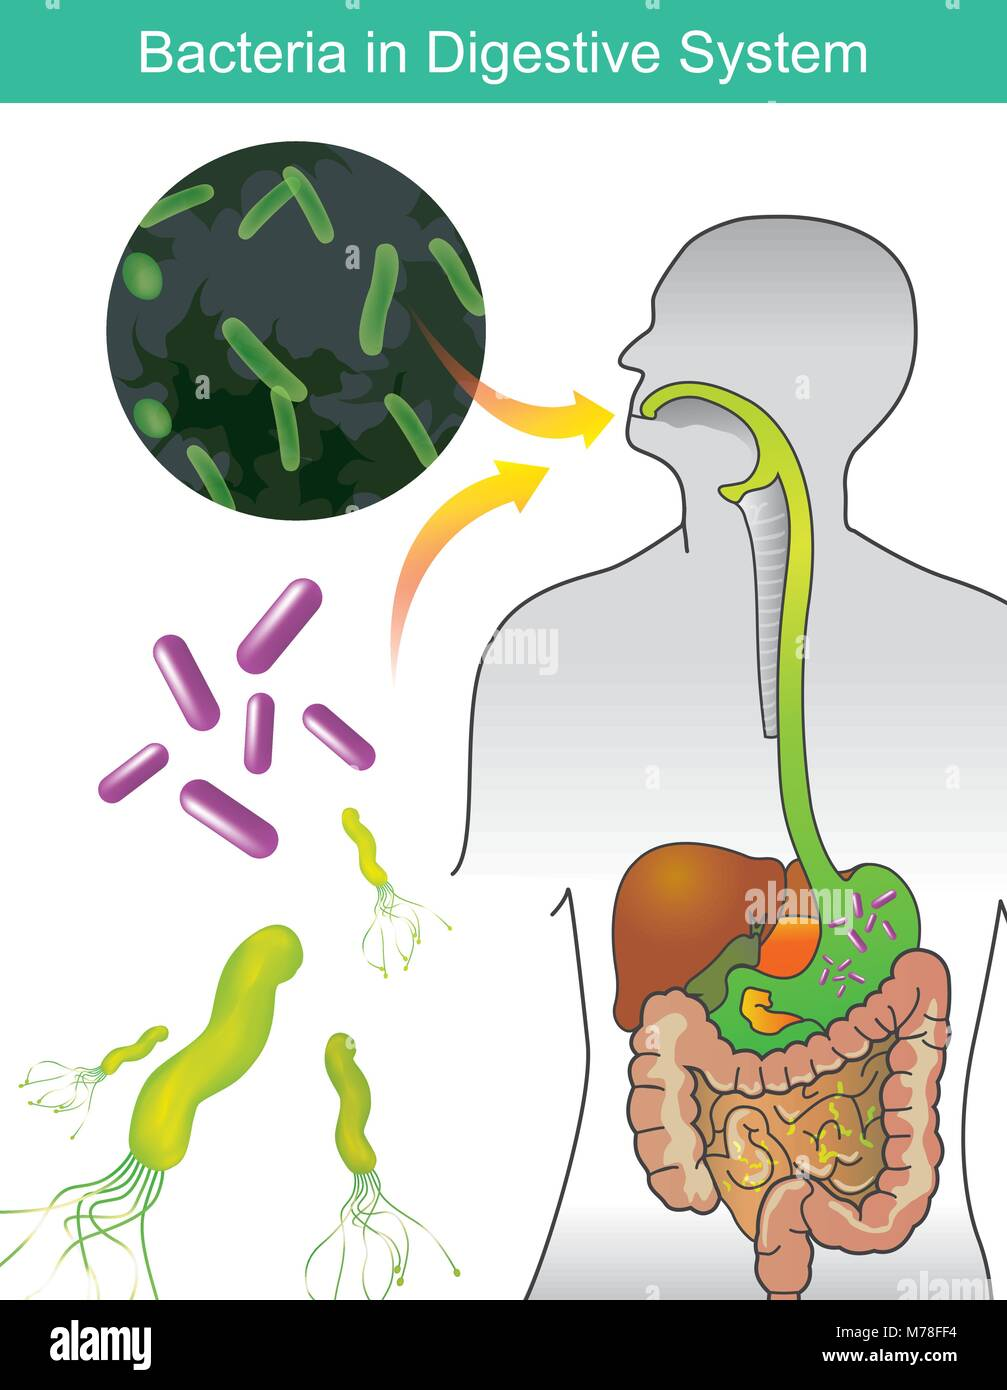 Digestive System Illustration Stockfotos & Digestive System ...